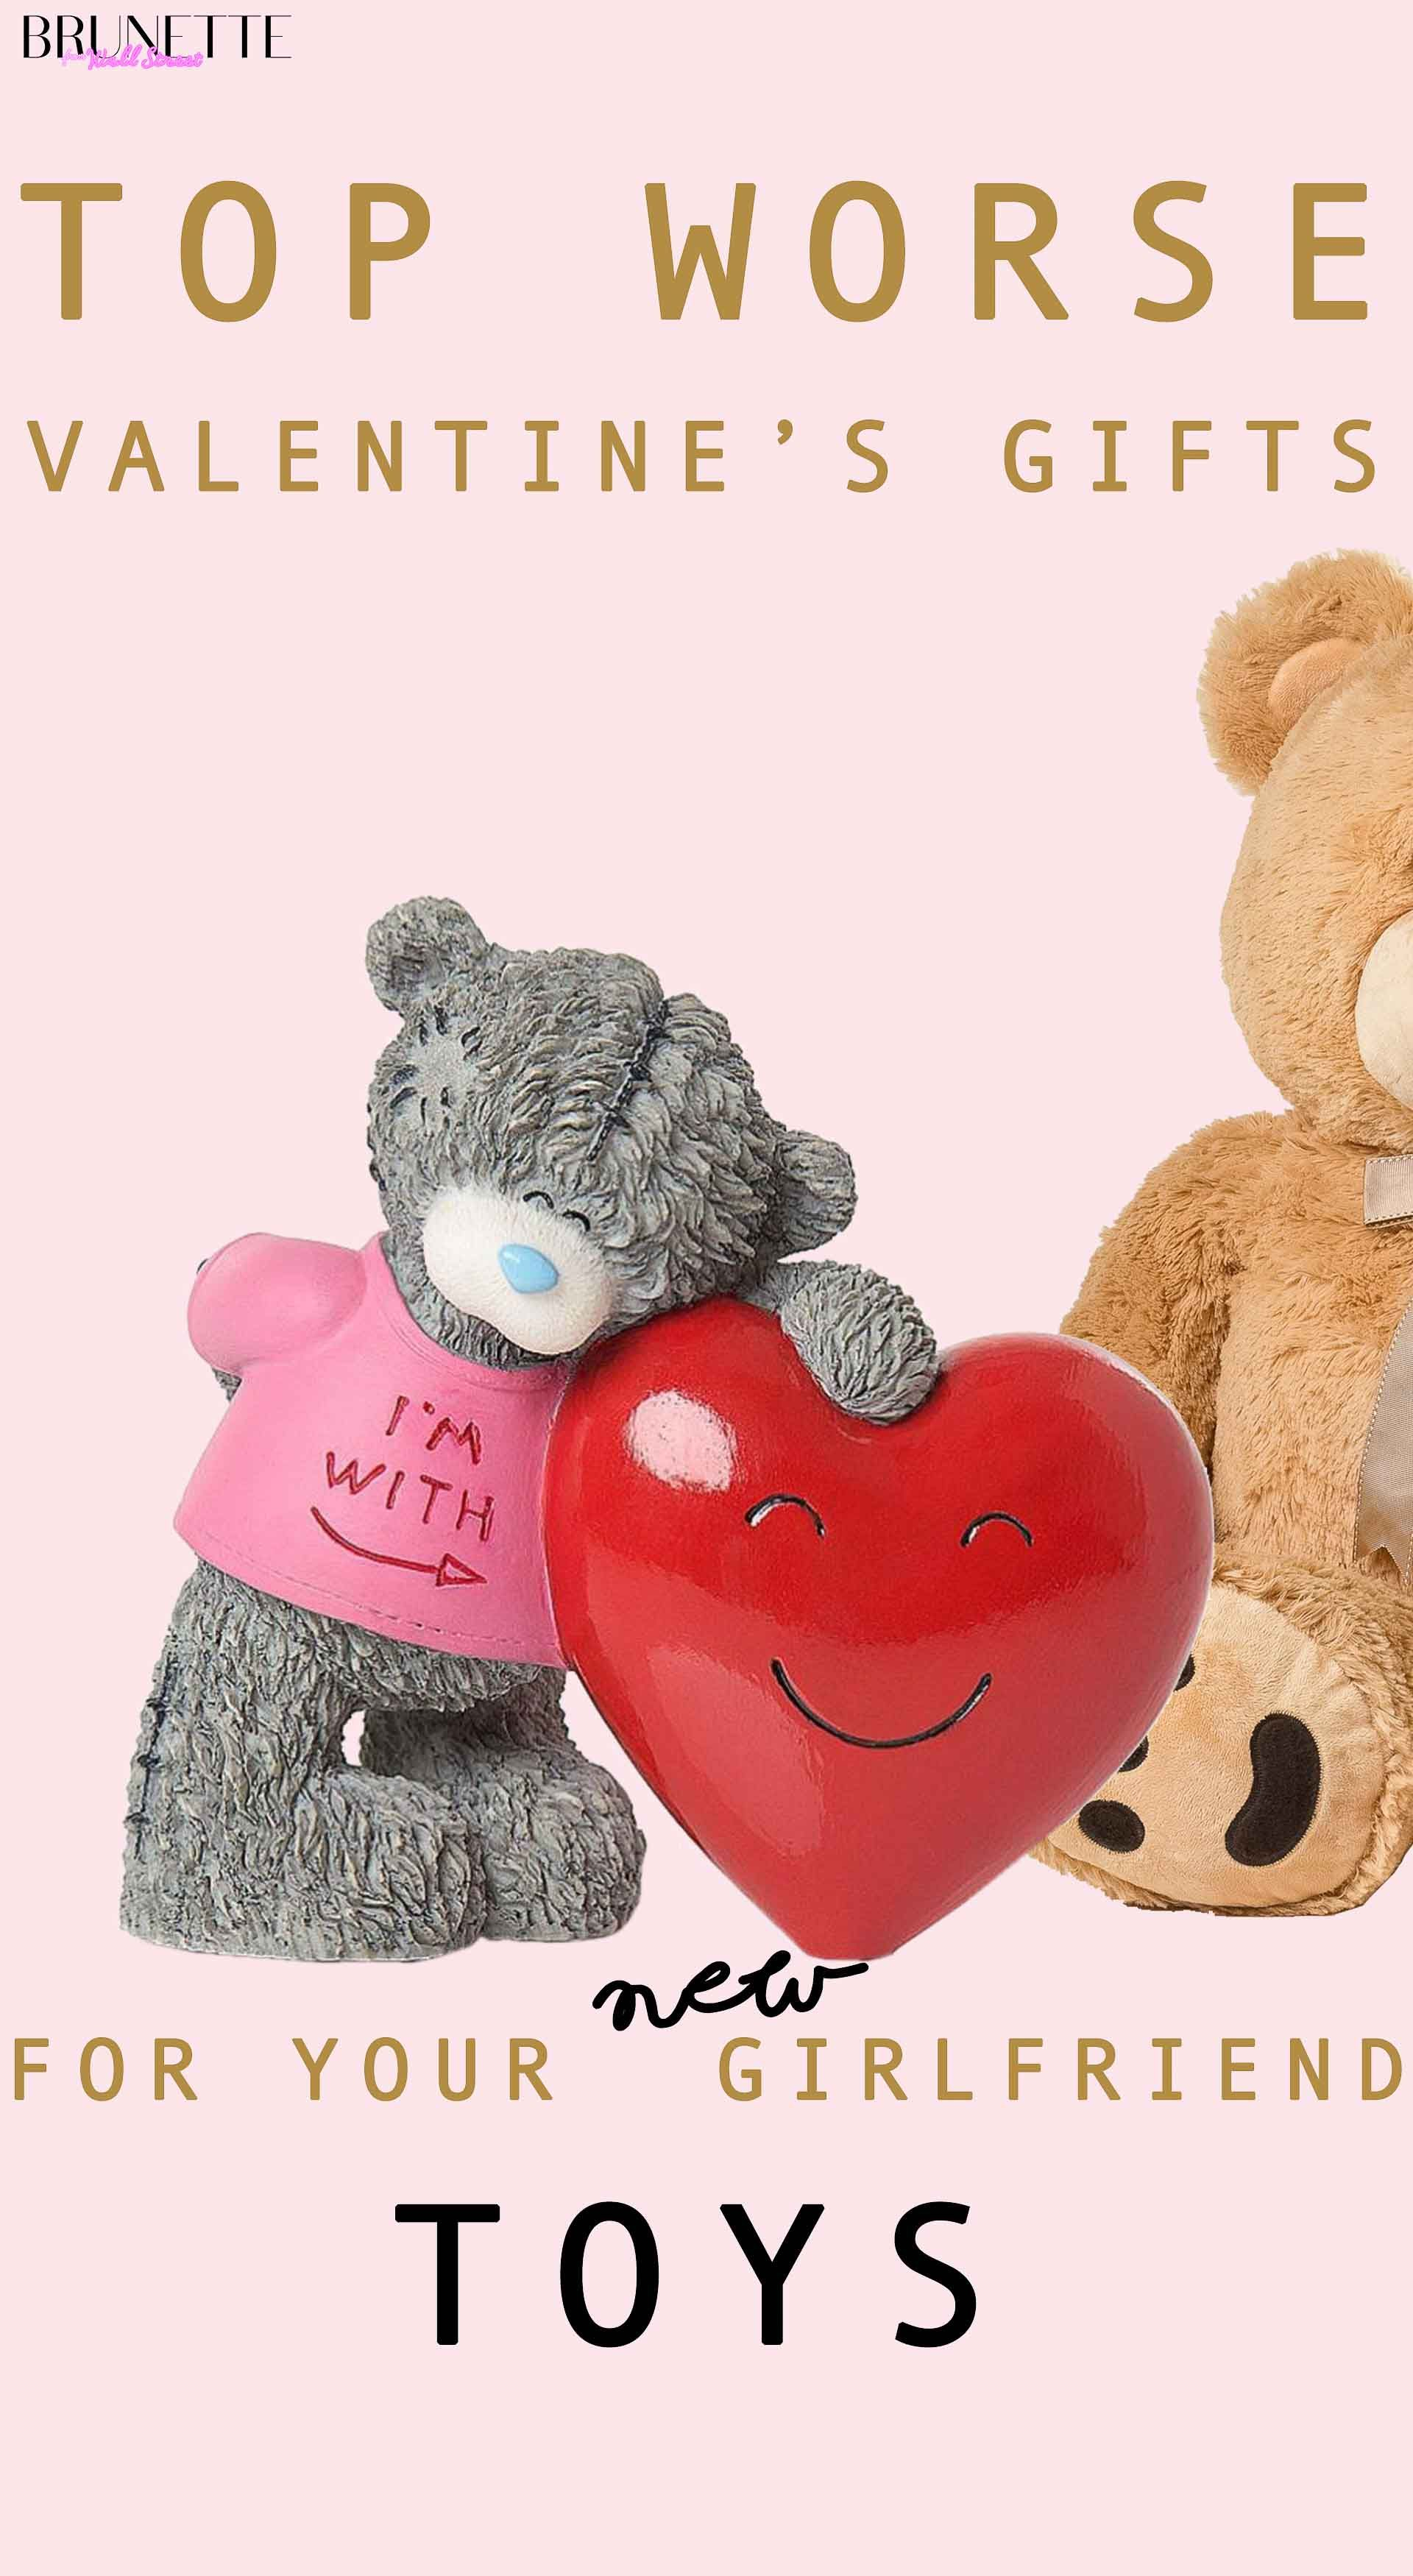 Teddy Tatty Figure Brown Bear With Text Overlay Top Worse Valentines Gifts For Your New Girlfrend Toys